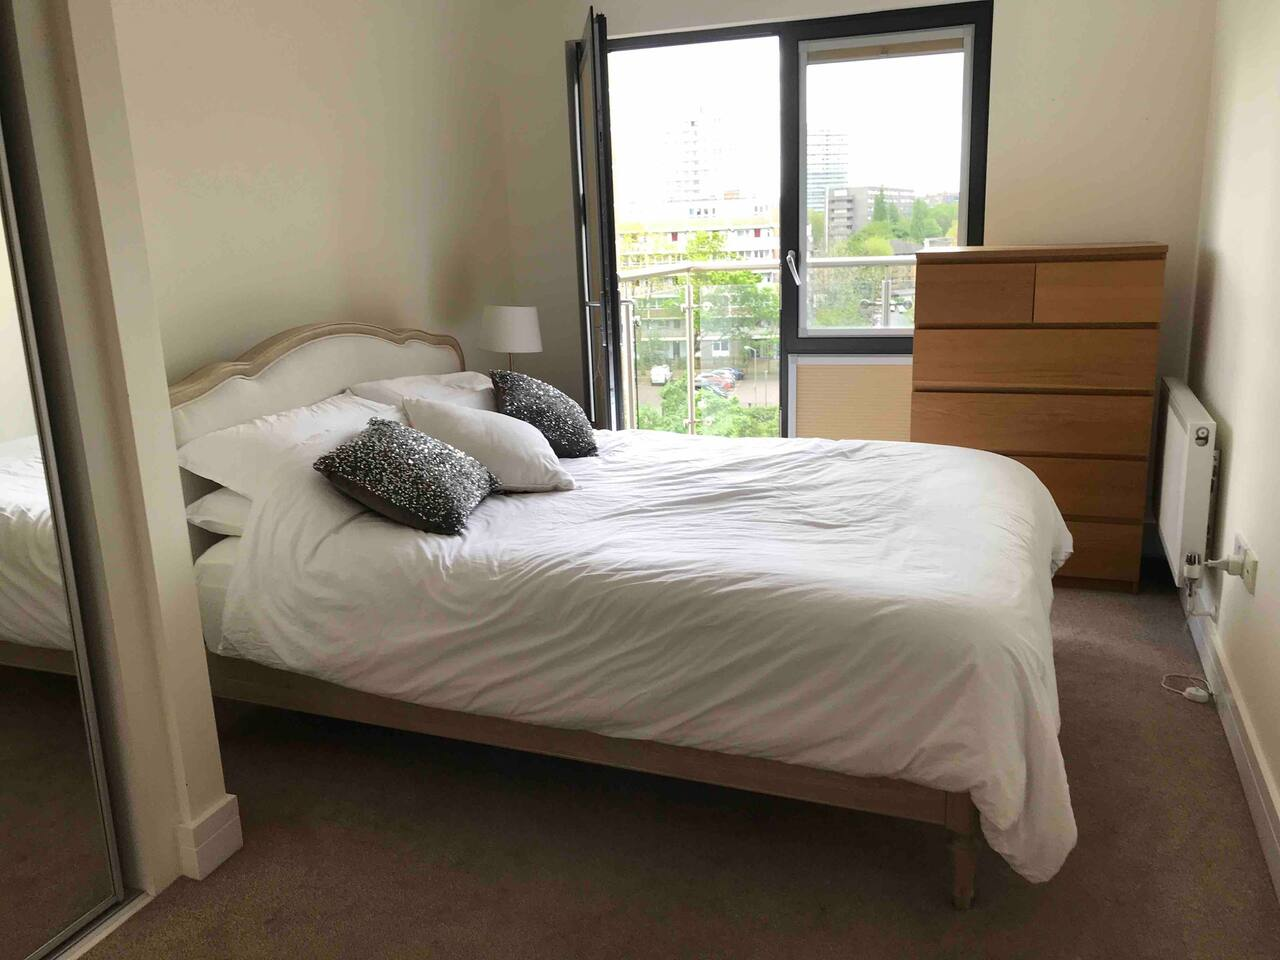 Beautifully sunny double bedroom with en-suite bathroom and private balcony